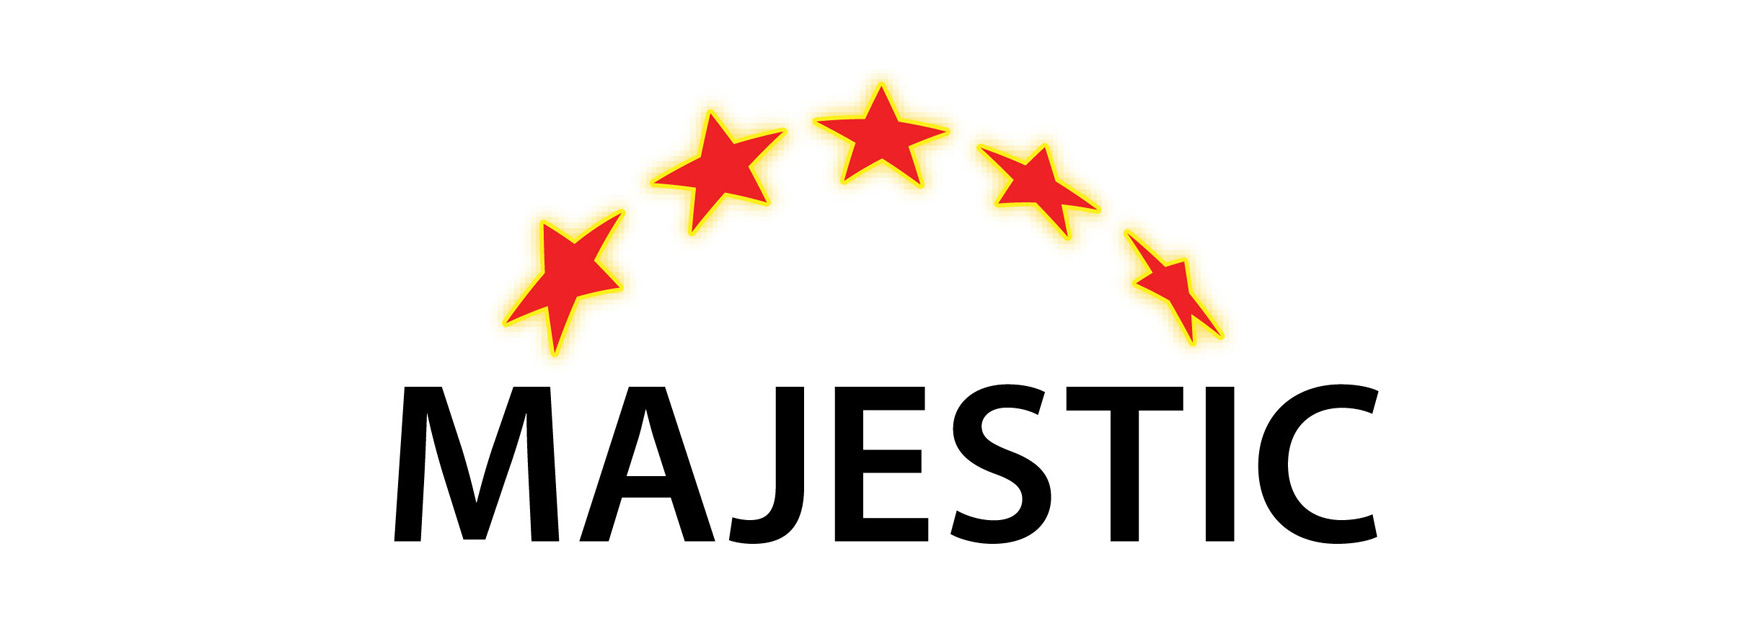 majestic-logo-large